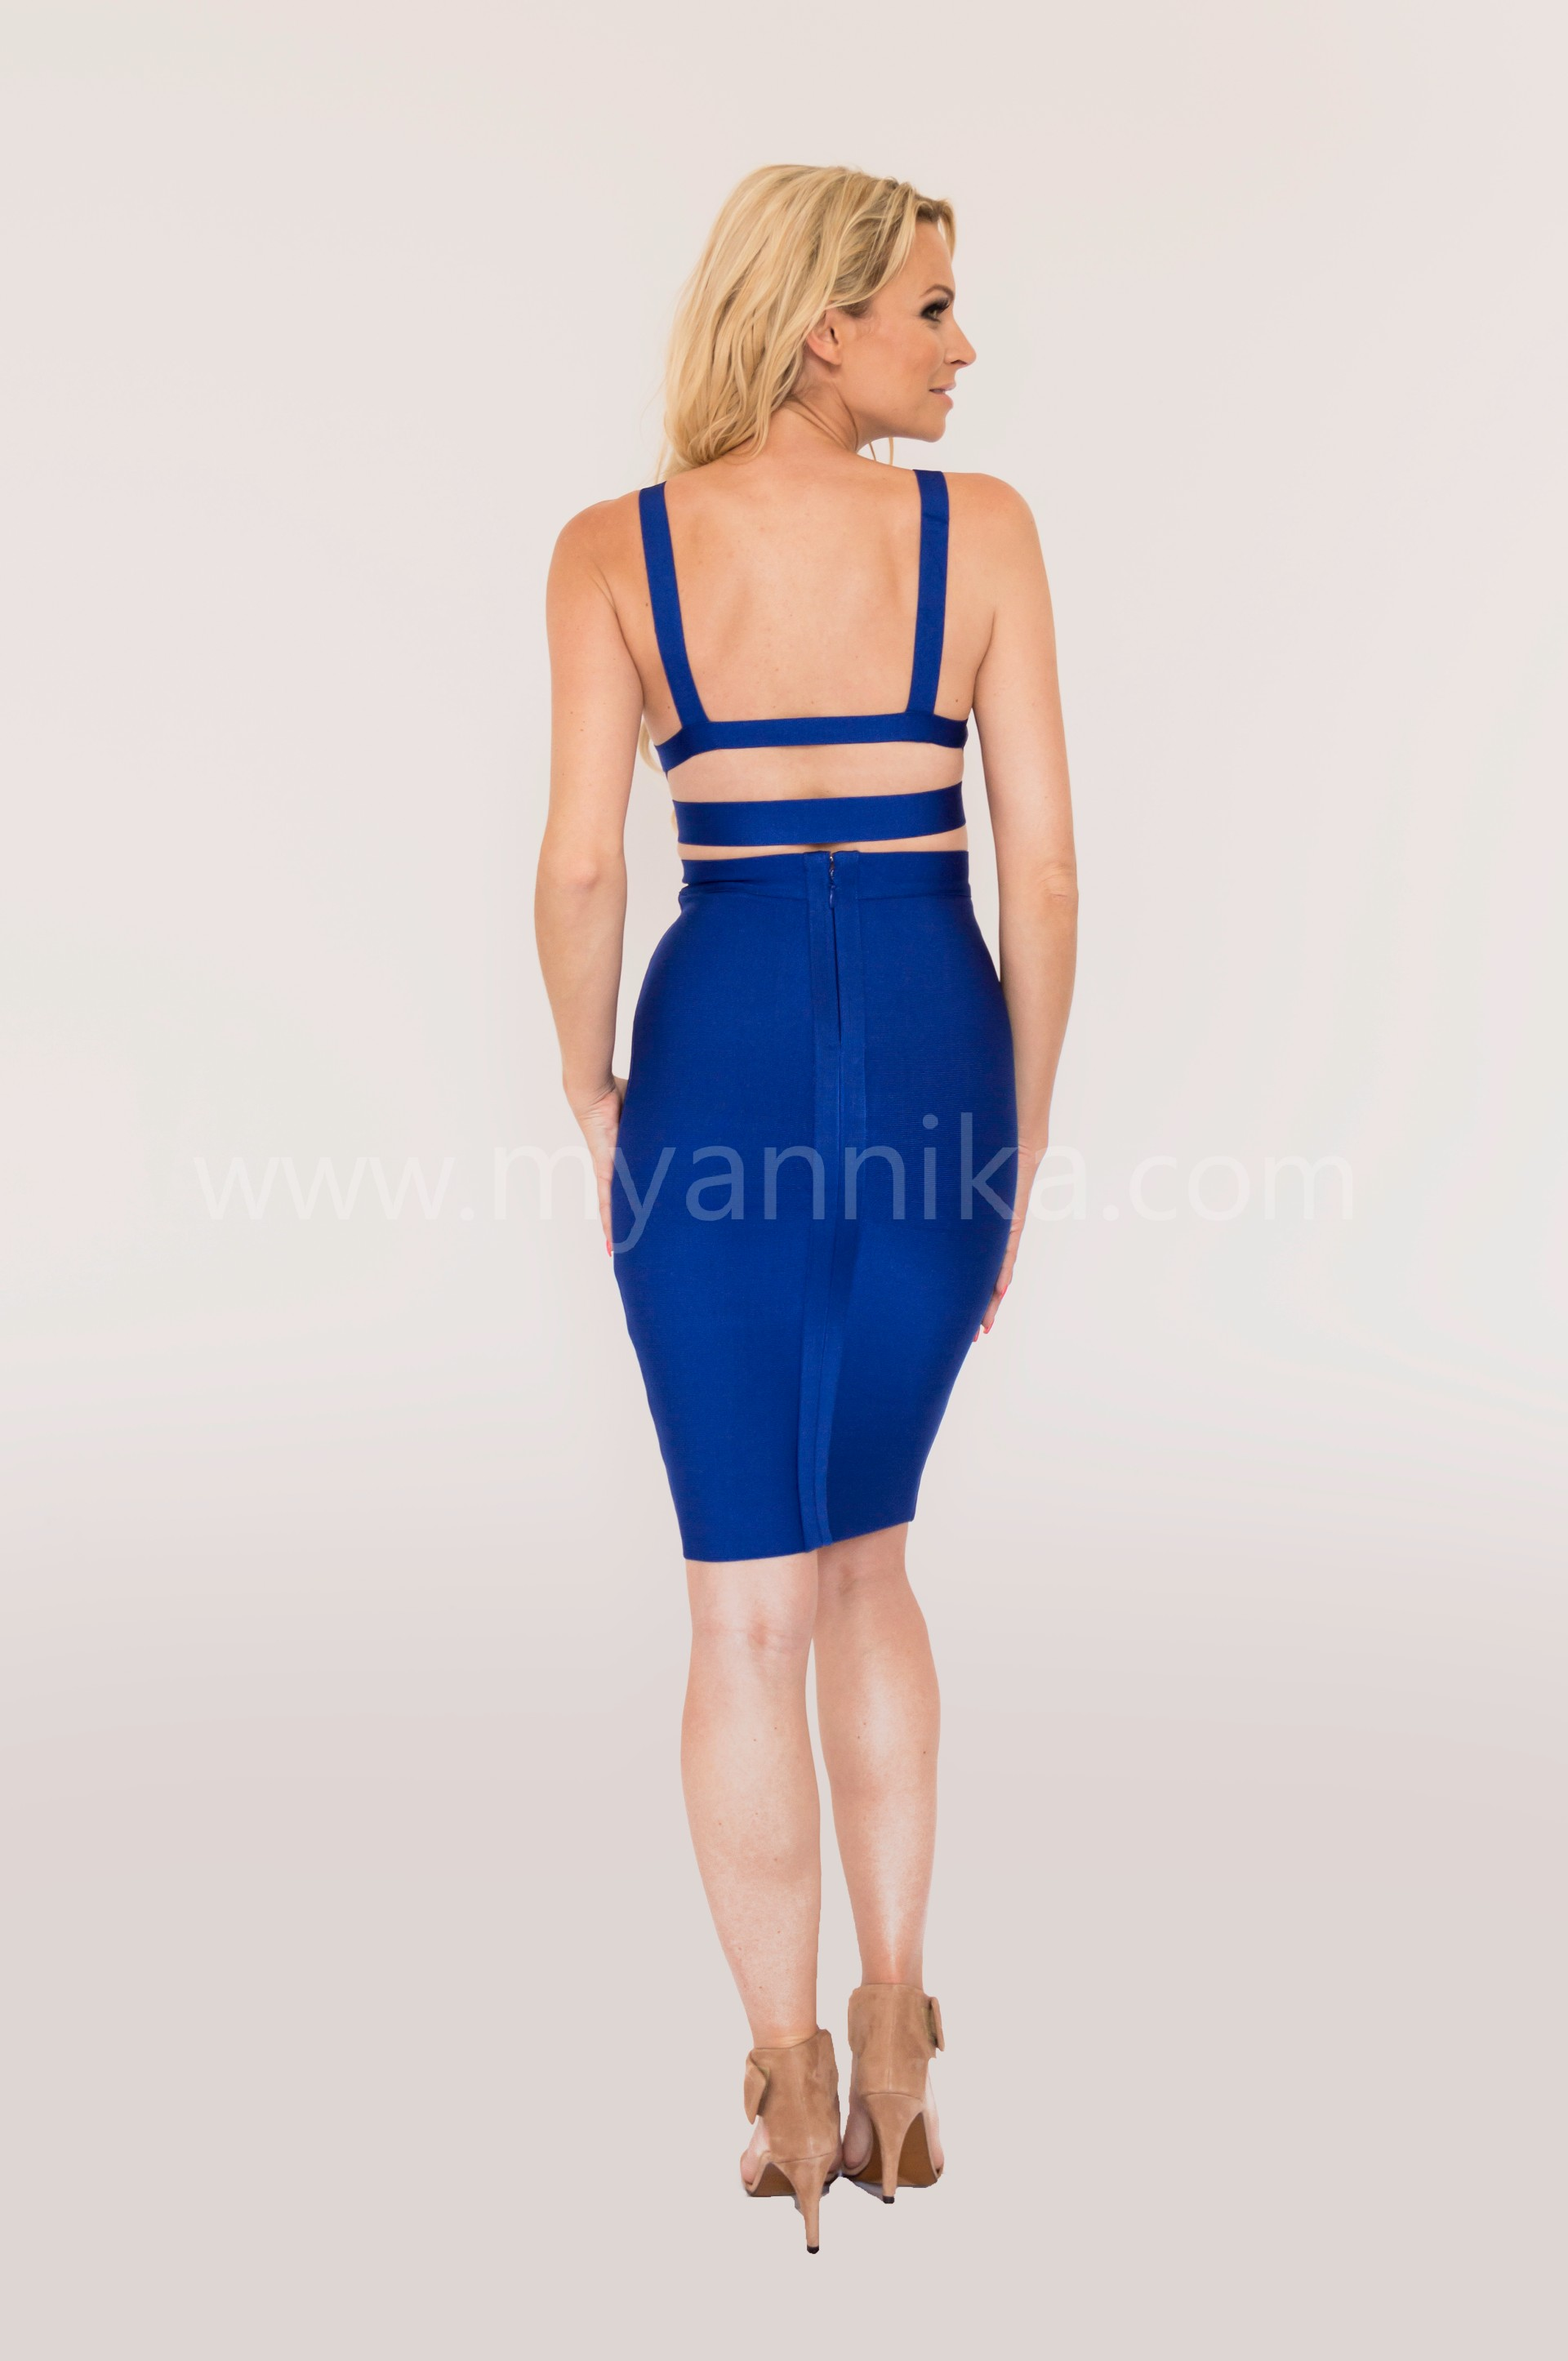 Malibu - Blue 2 Piece Bandage Dress Combo with Pencil Skirt and Crop Top Annika - Bandage Dresses | Celebrity Party Dresses | Herve Leger Dresses Bandage dress detail